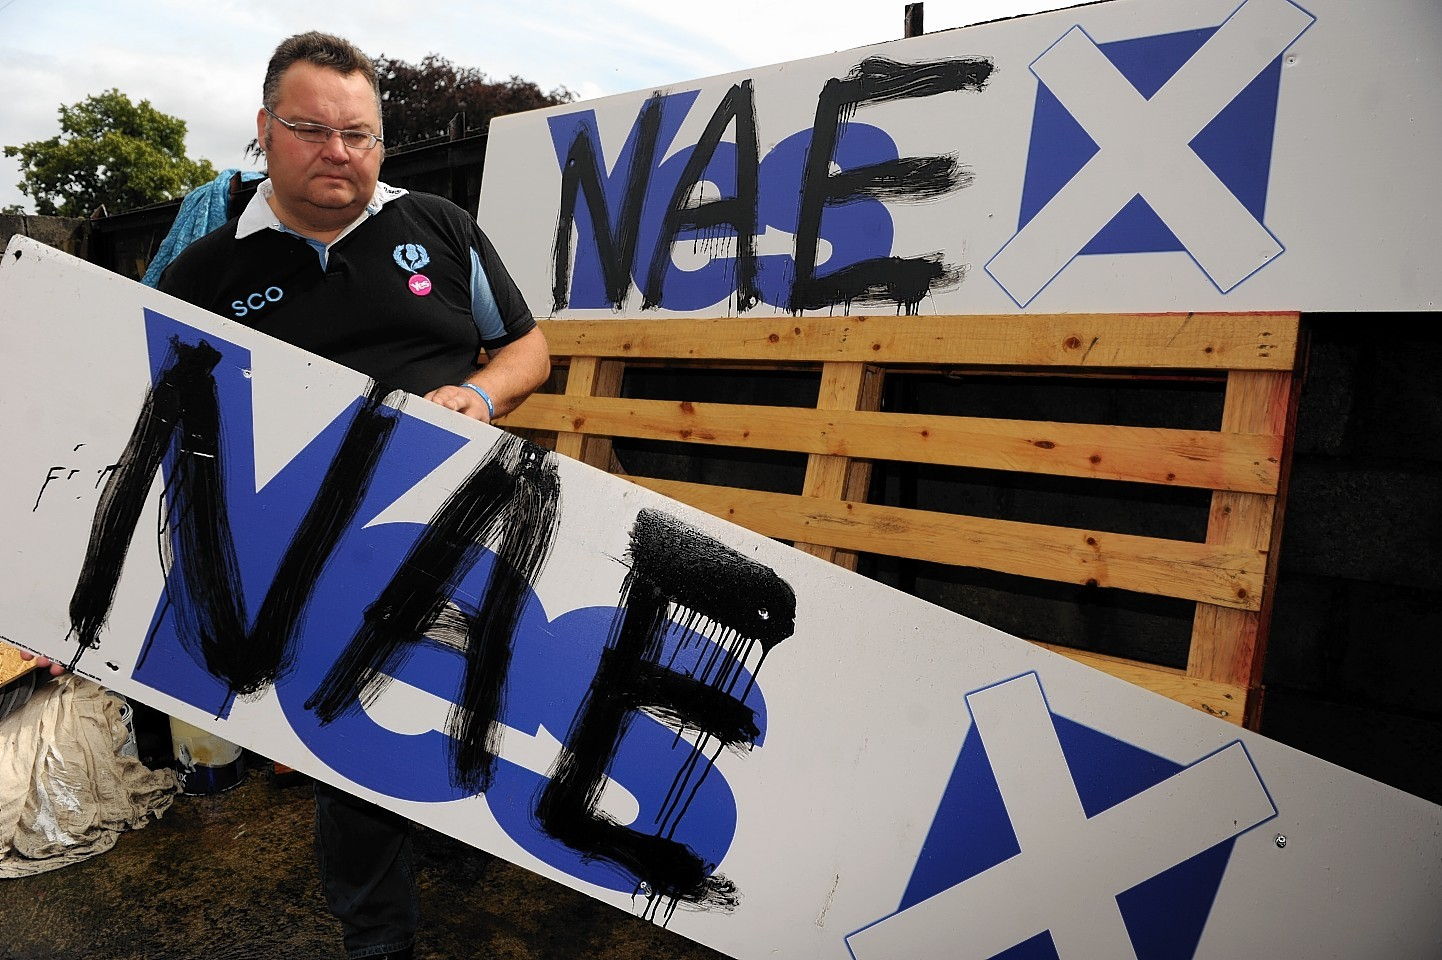 Graffiti on Yes campaign posters